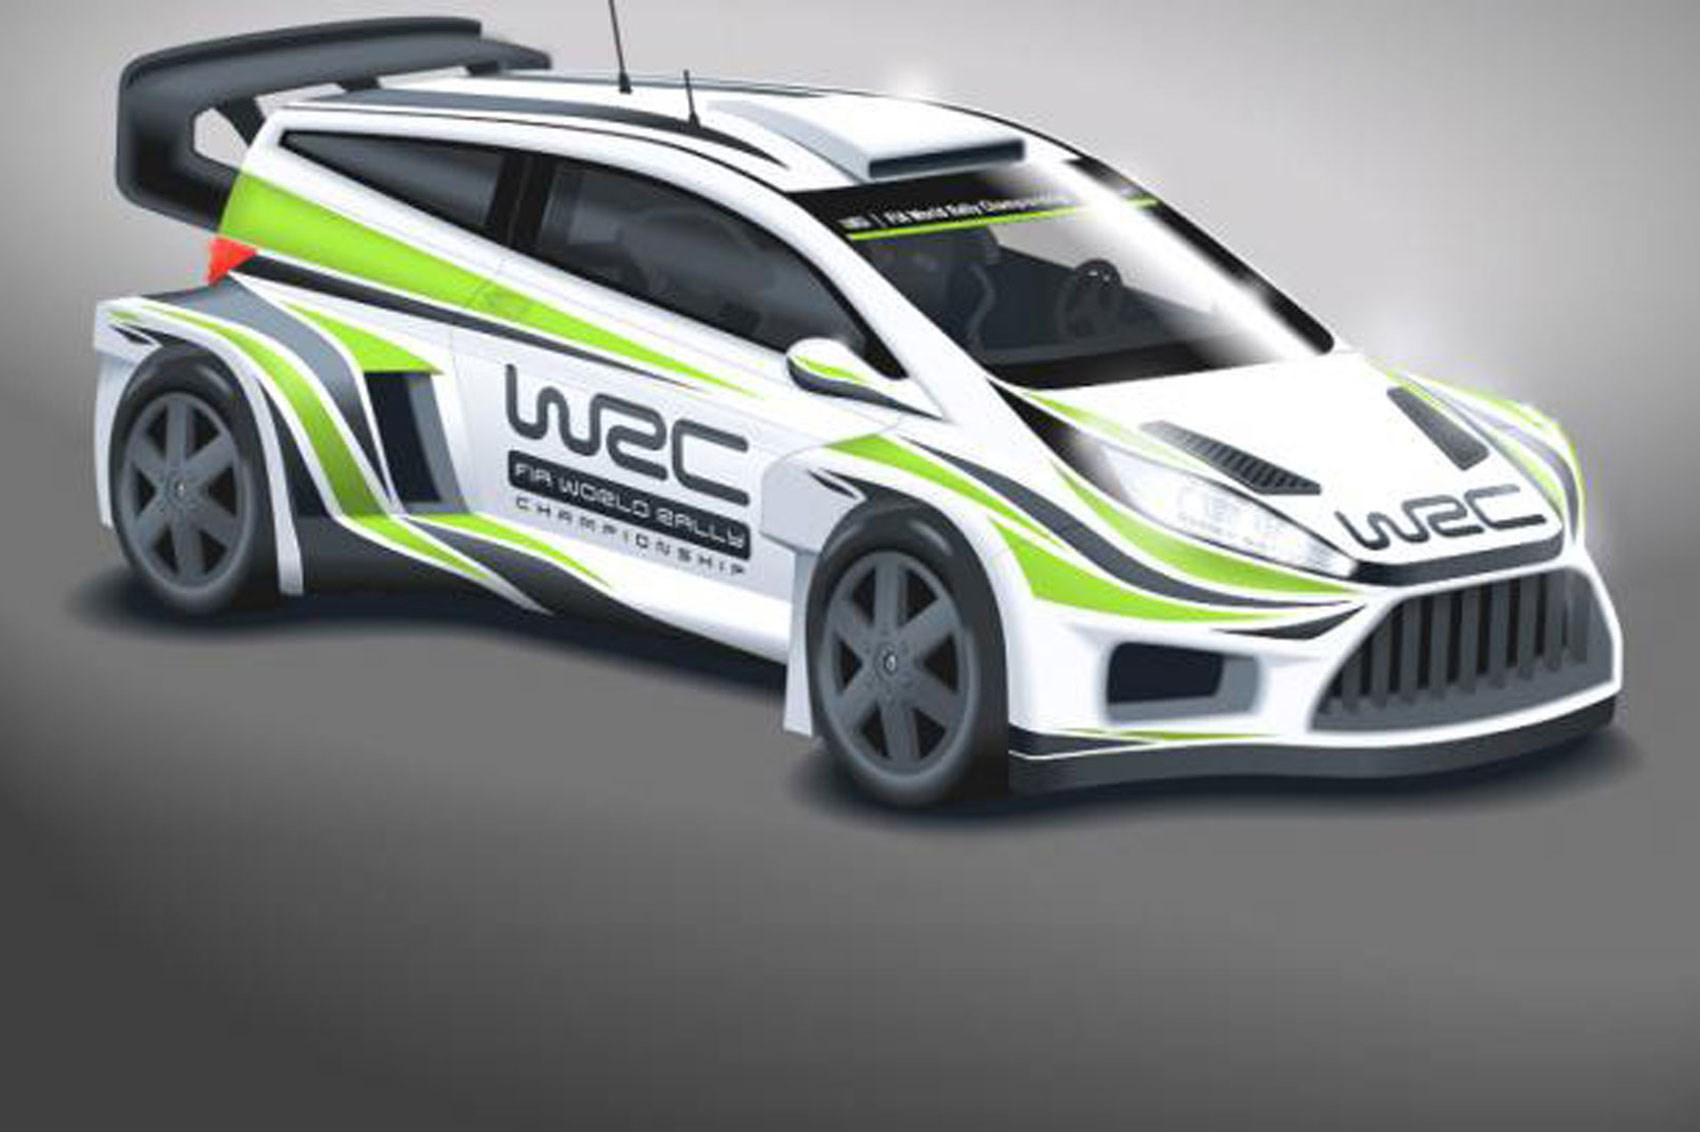 Ultrablogus  Pleasing Wild New Look For Wrc Cars In  By Car Magazine With Magnificent Wrc Cars Will Get Wider Bodies Bigger Wings And More Power For  With Easy On The Eye Boeing  Interior Also Cessna Mustang Interior In Addition Slr Interior And Corvette Carbon Fiber Interior As Well As Gsr Interior Additionally Bmw E M Interior From Carmagazinecouk With Ultrablogus  Magnificent Wild New Look For Wrc Cars In  By Car Magazine With Easy On The Eye Wrc Cars Will Get Wider Bodies Bigger Wings And More Power For  And Pleasing Boeing  Interior Also Cessna Mustang Interior In Addition Slr Interior From Carmagazinecouk